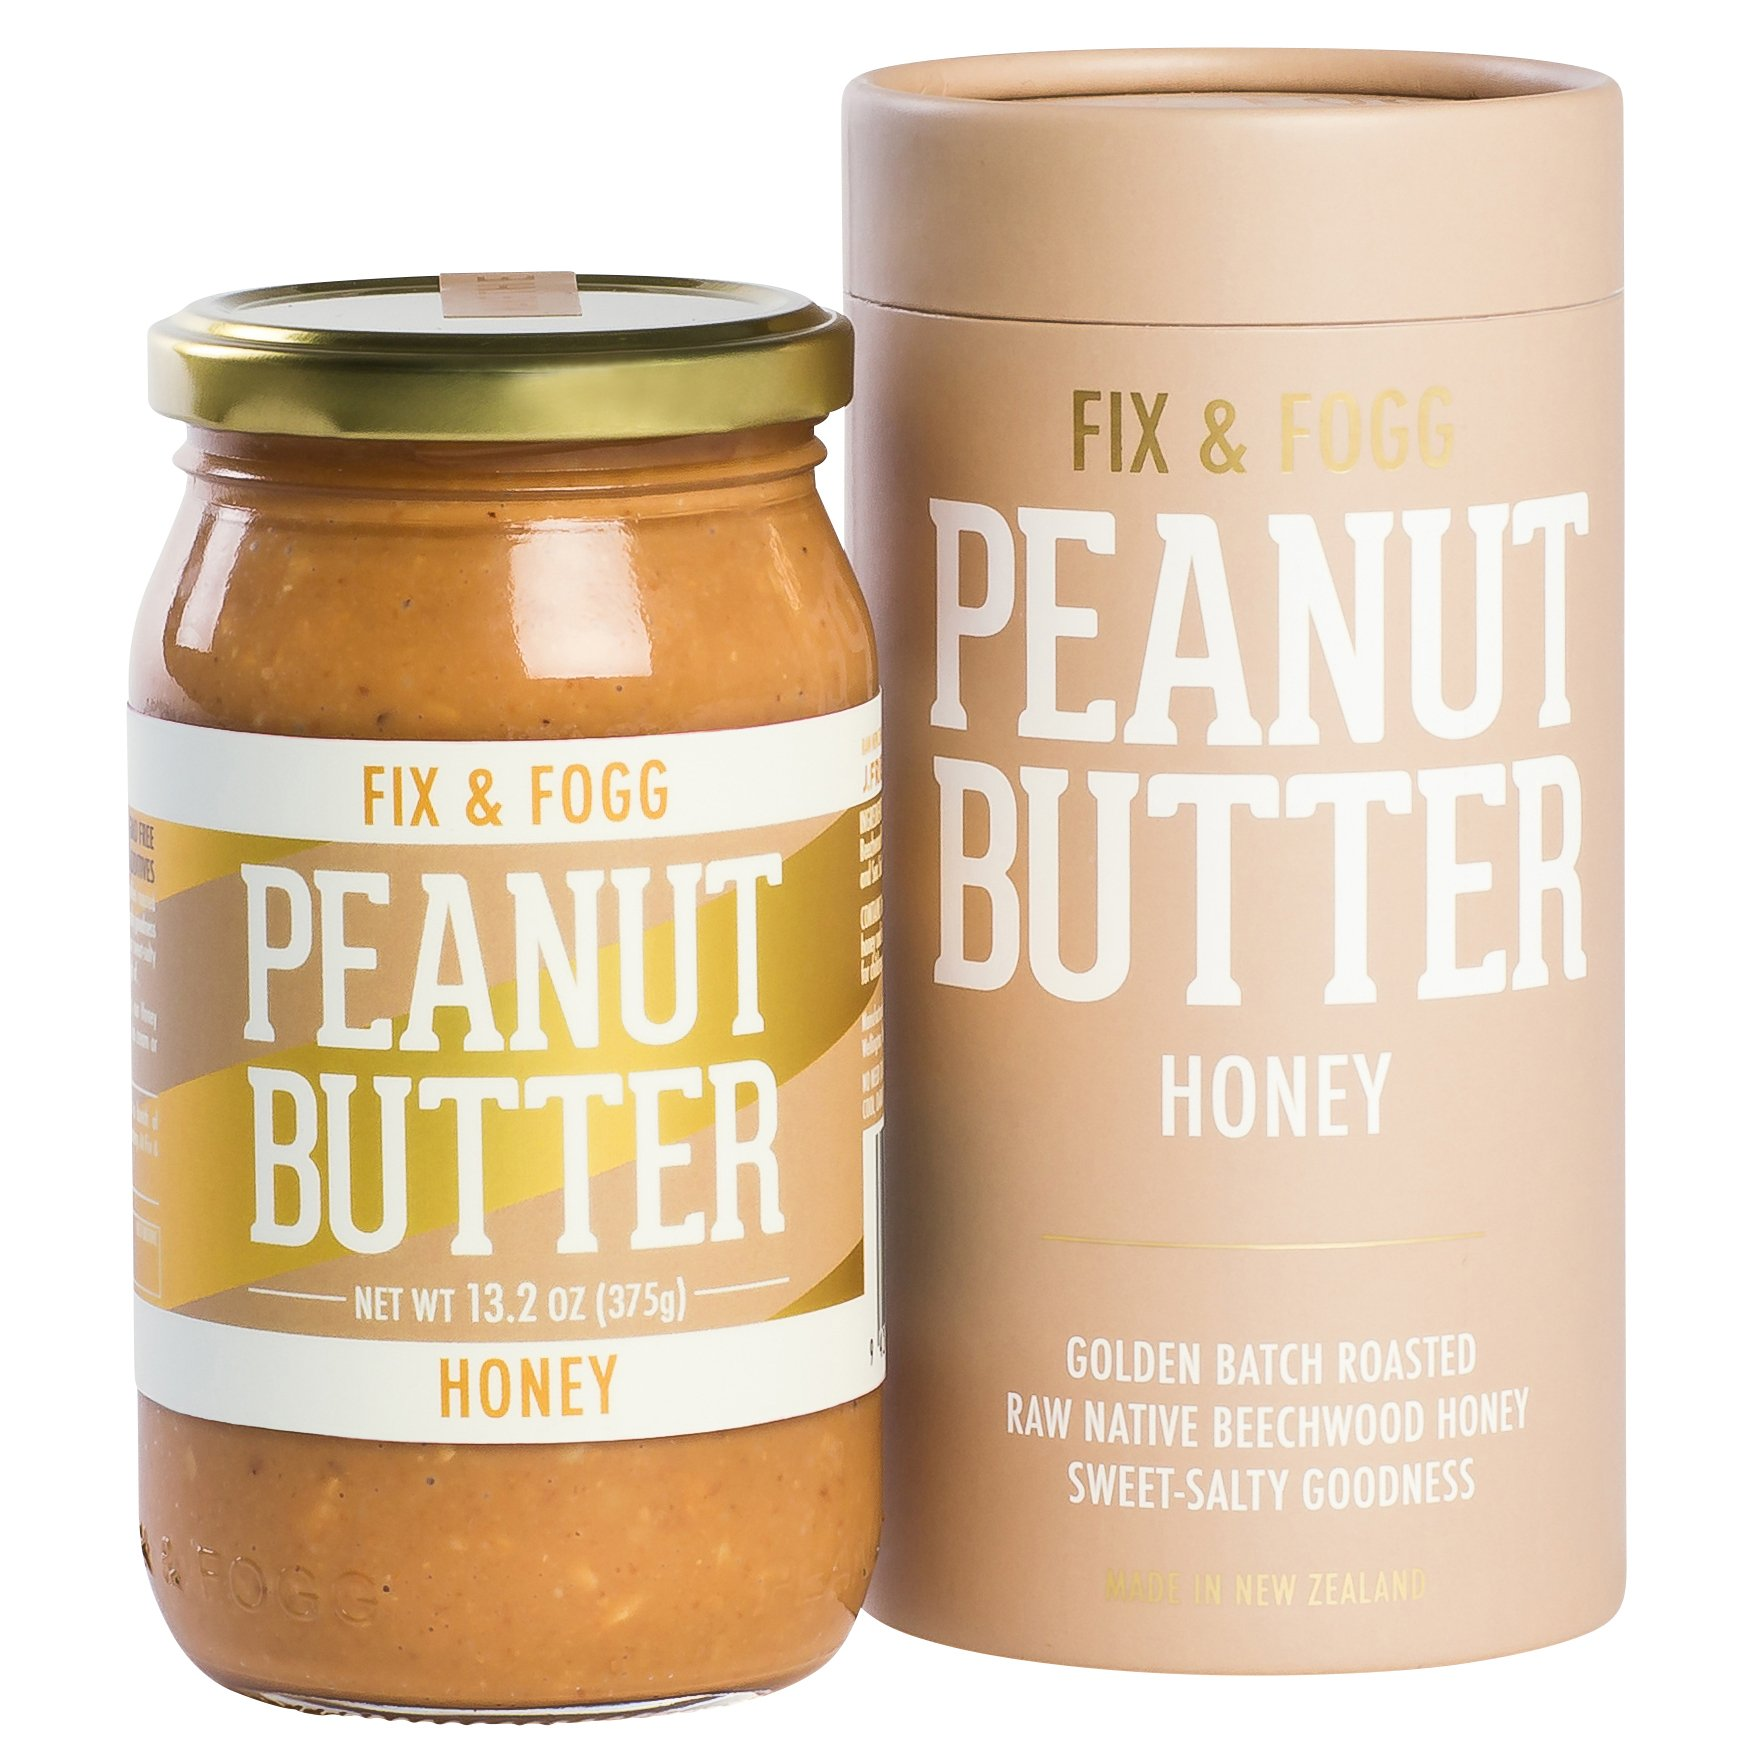 Fix & Fogg Honey Peanut Butter (13.2 oz) All Natural, Handmade, Organic NZ Honey, Golden Roasted With Glass Jar and Beautifully Designed Cardboard Gift Canister.